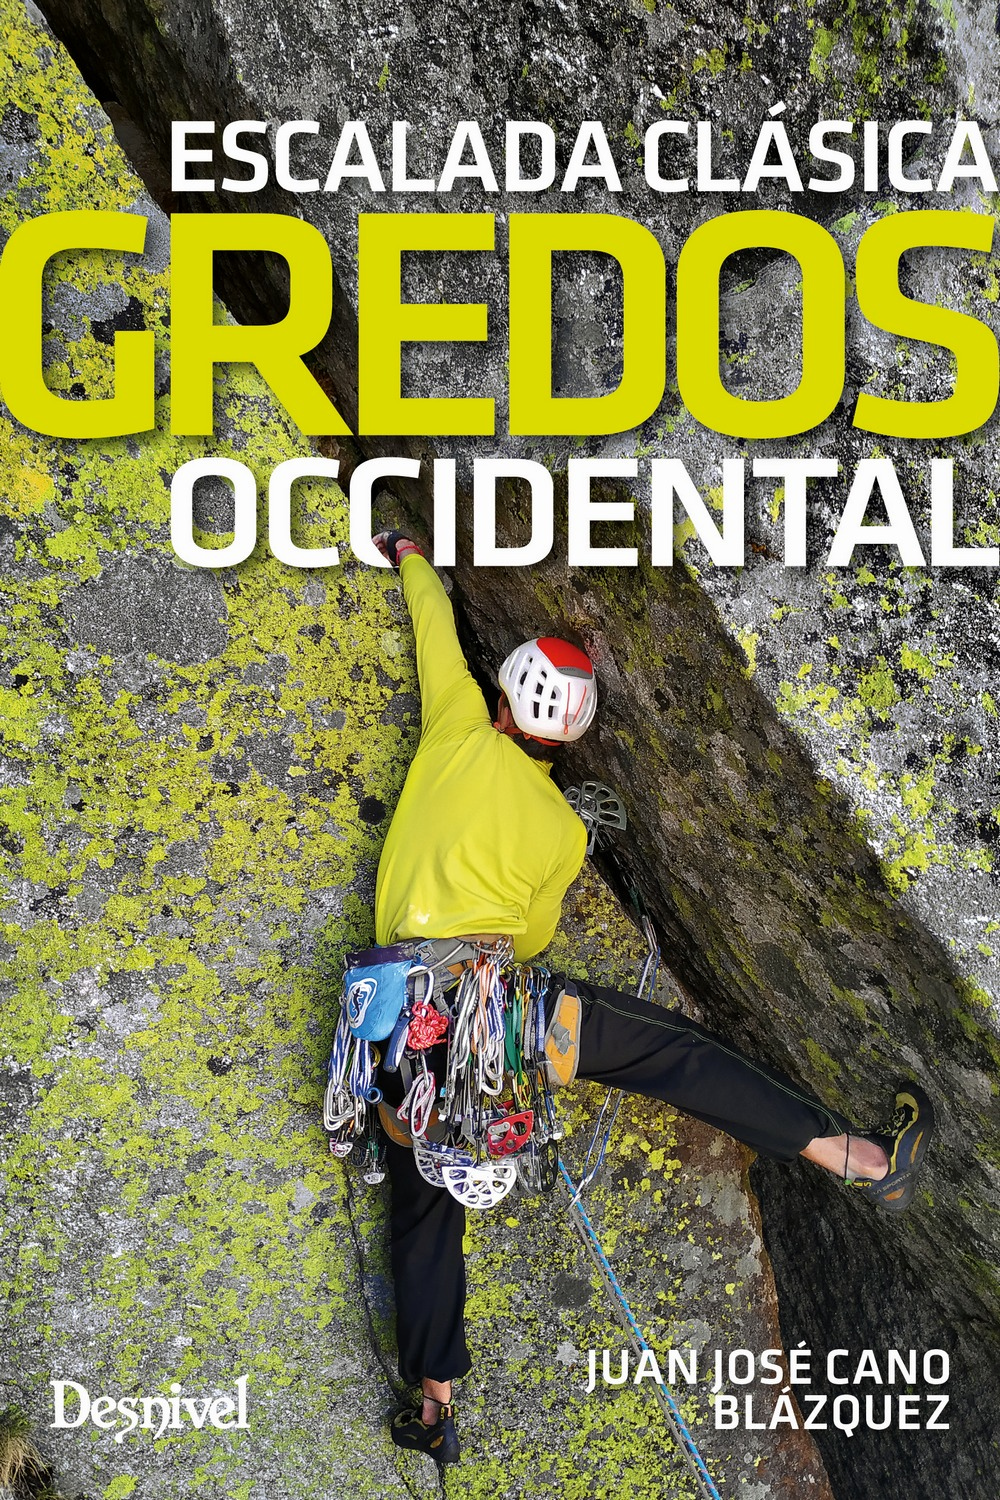 Gredos Occidental. Escalada clásica